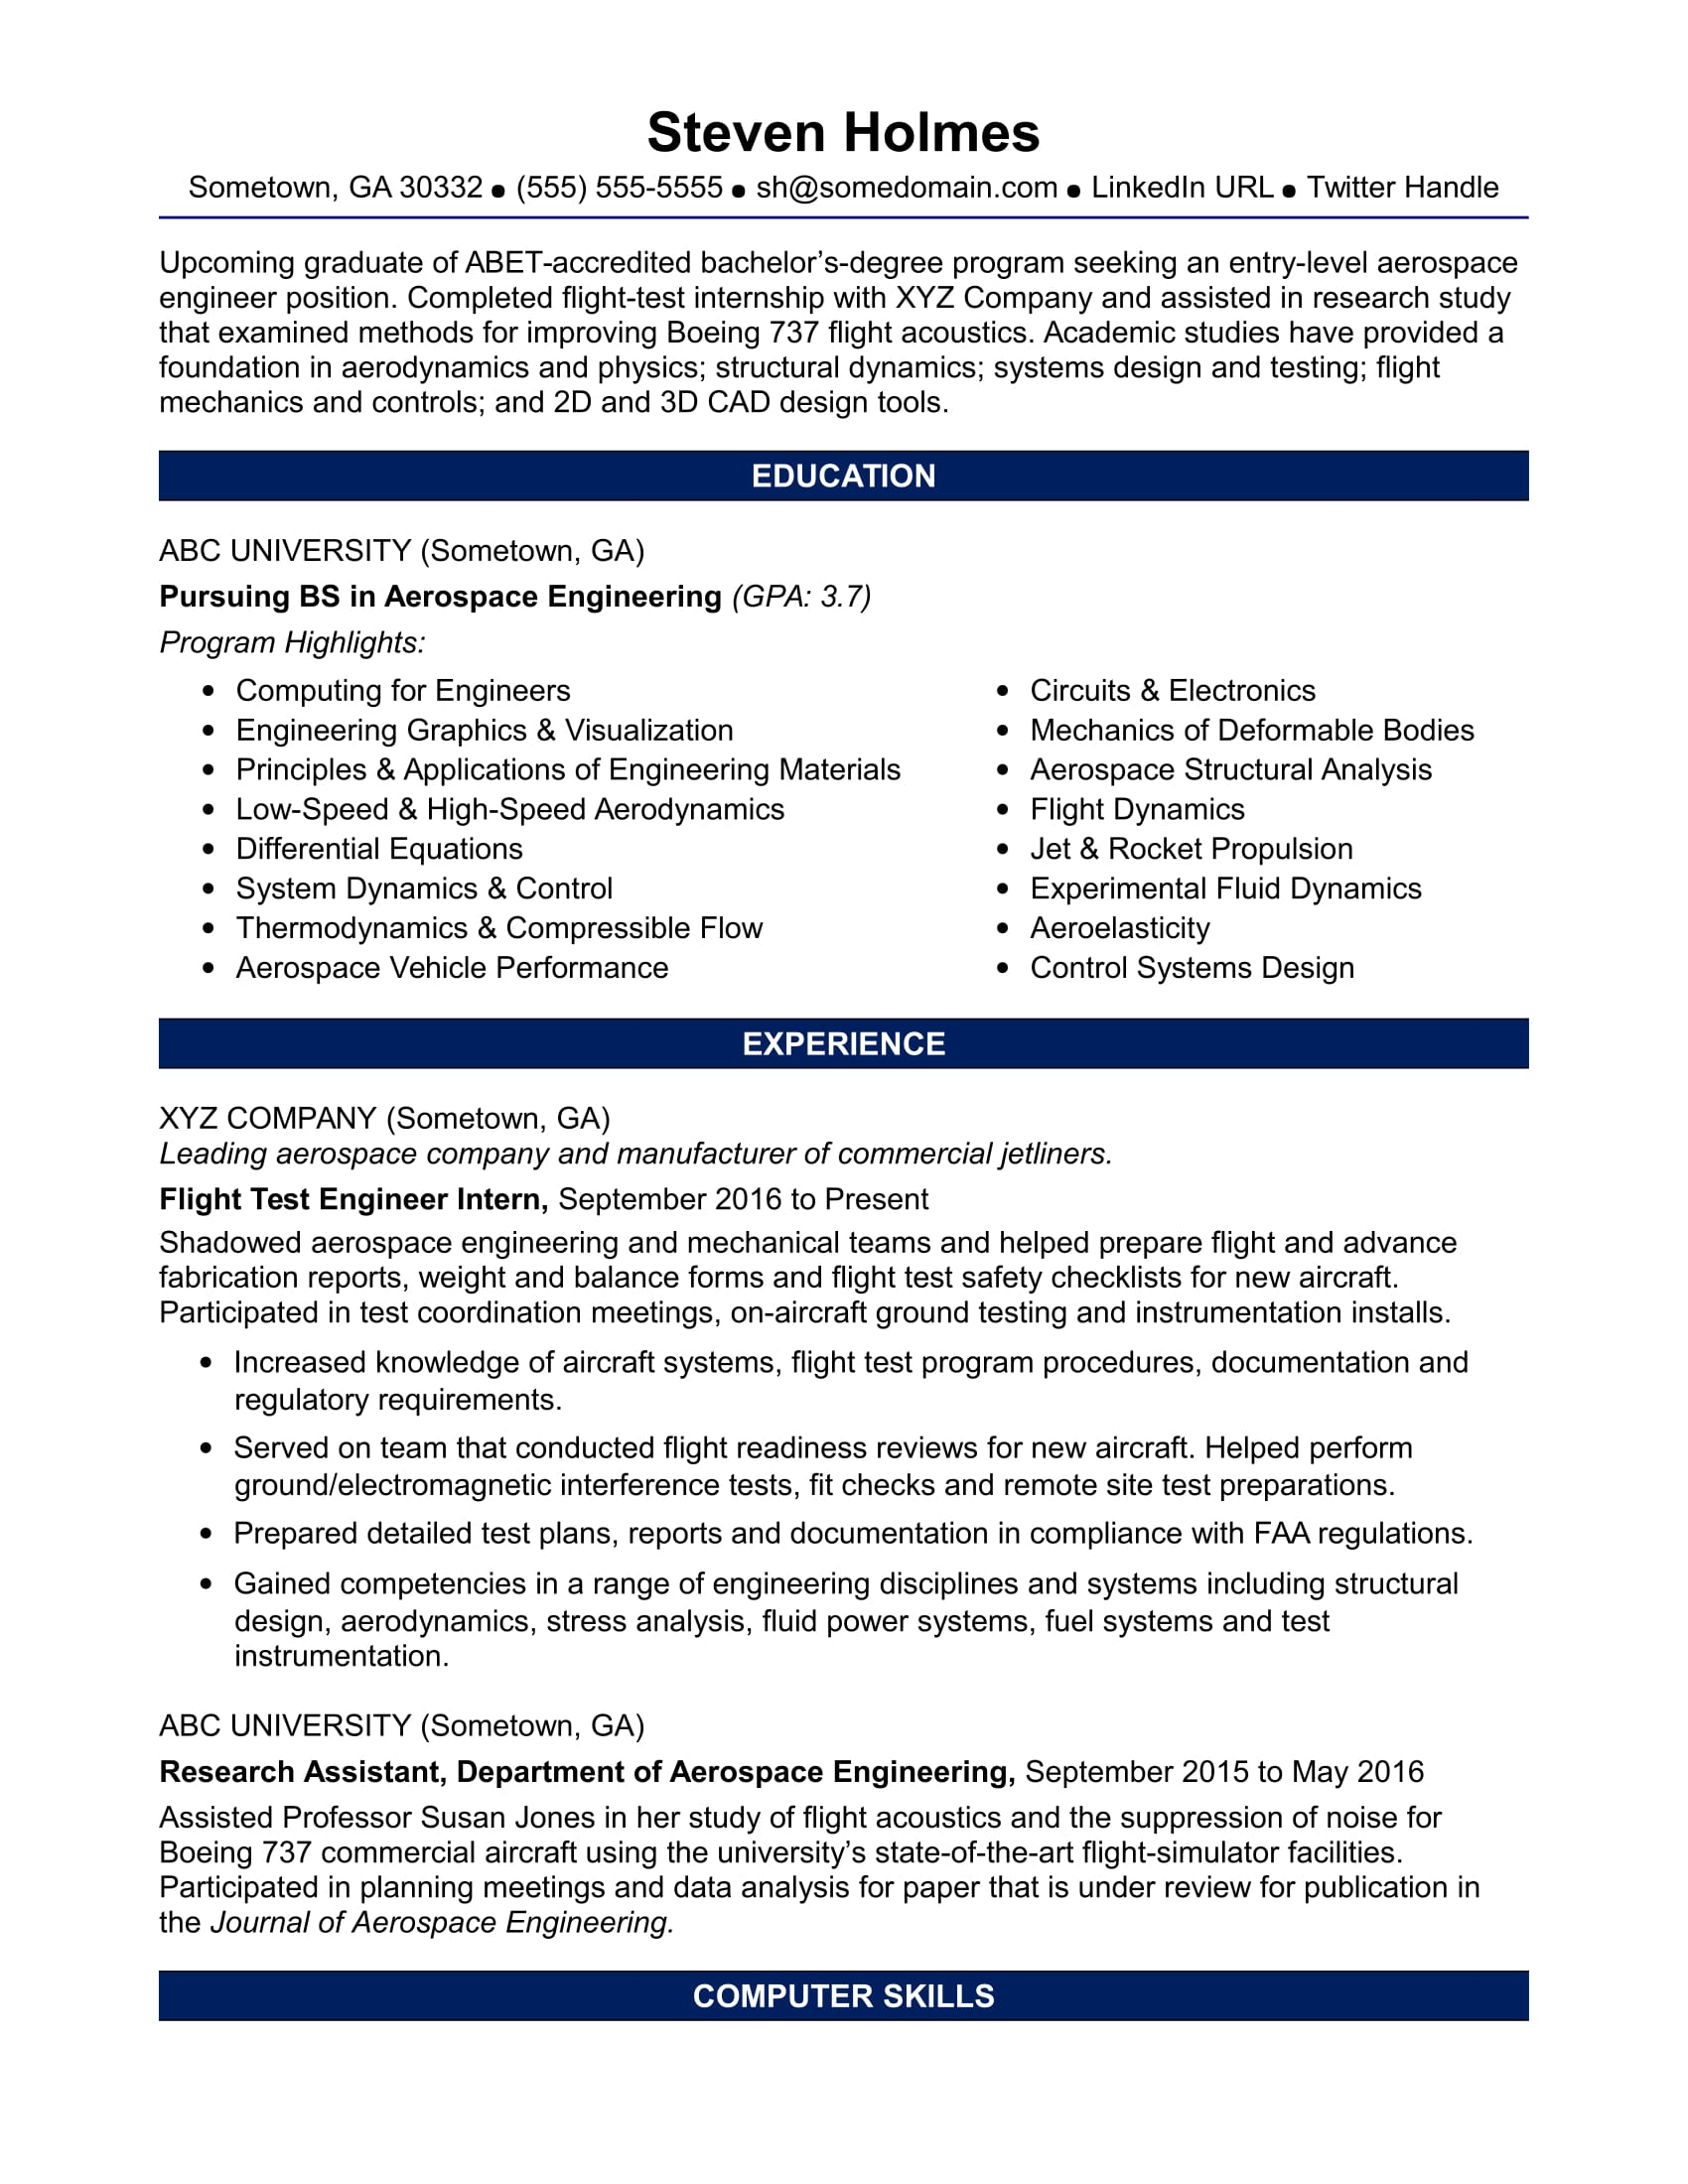 sample resume for an entry level aerospace engineer monster materials format law Resume Materials Engineer Resume